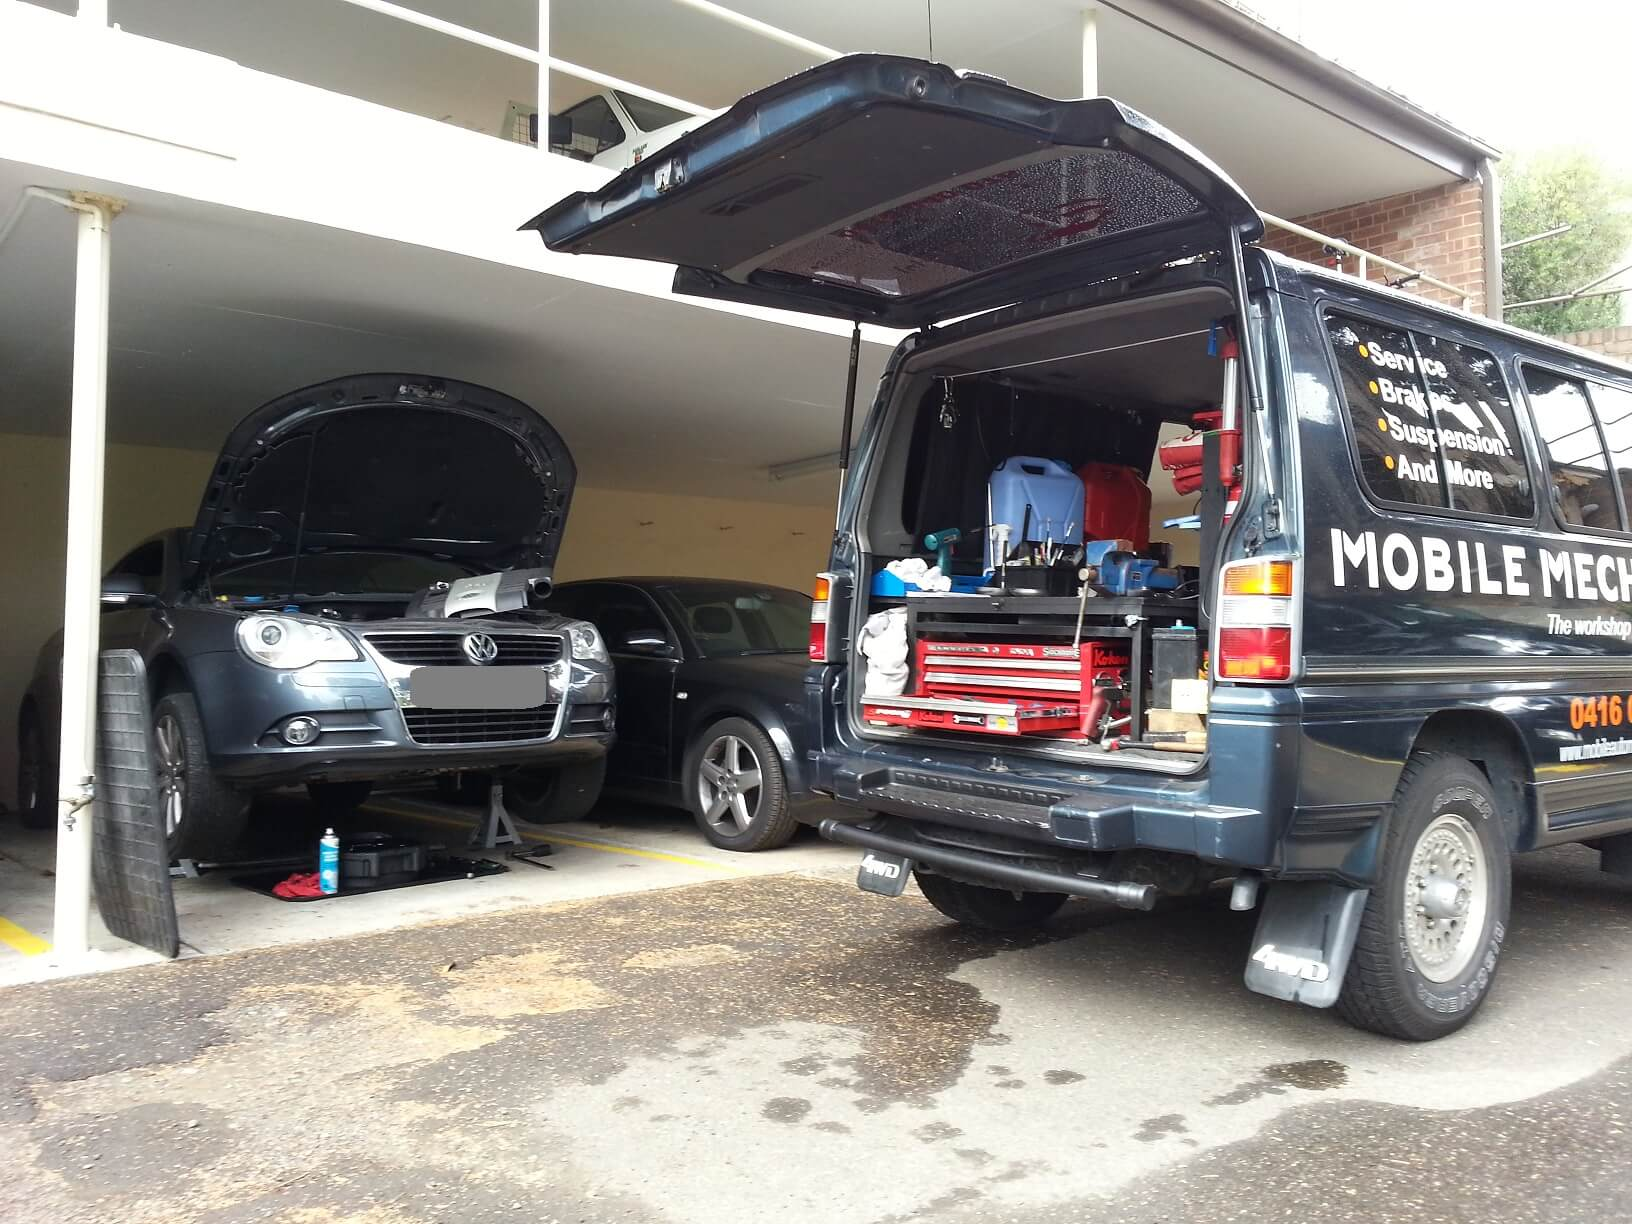 Onsite Auto Repair, The Traveling Mechanic business